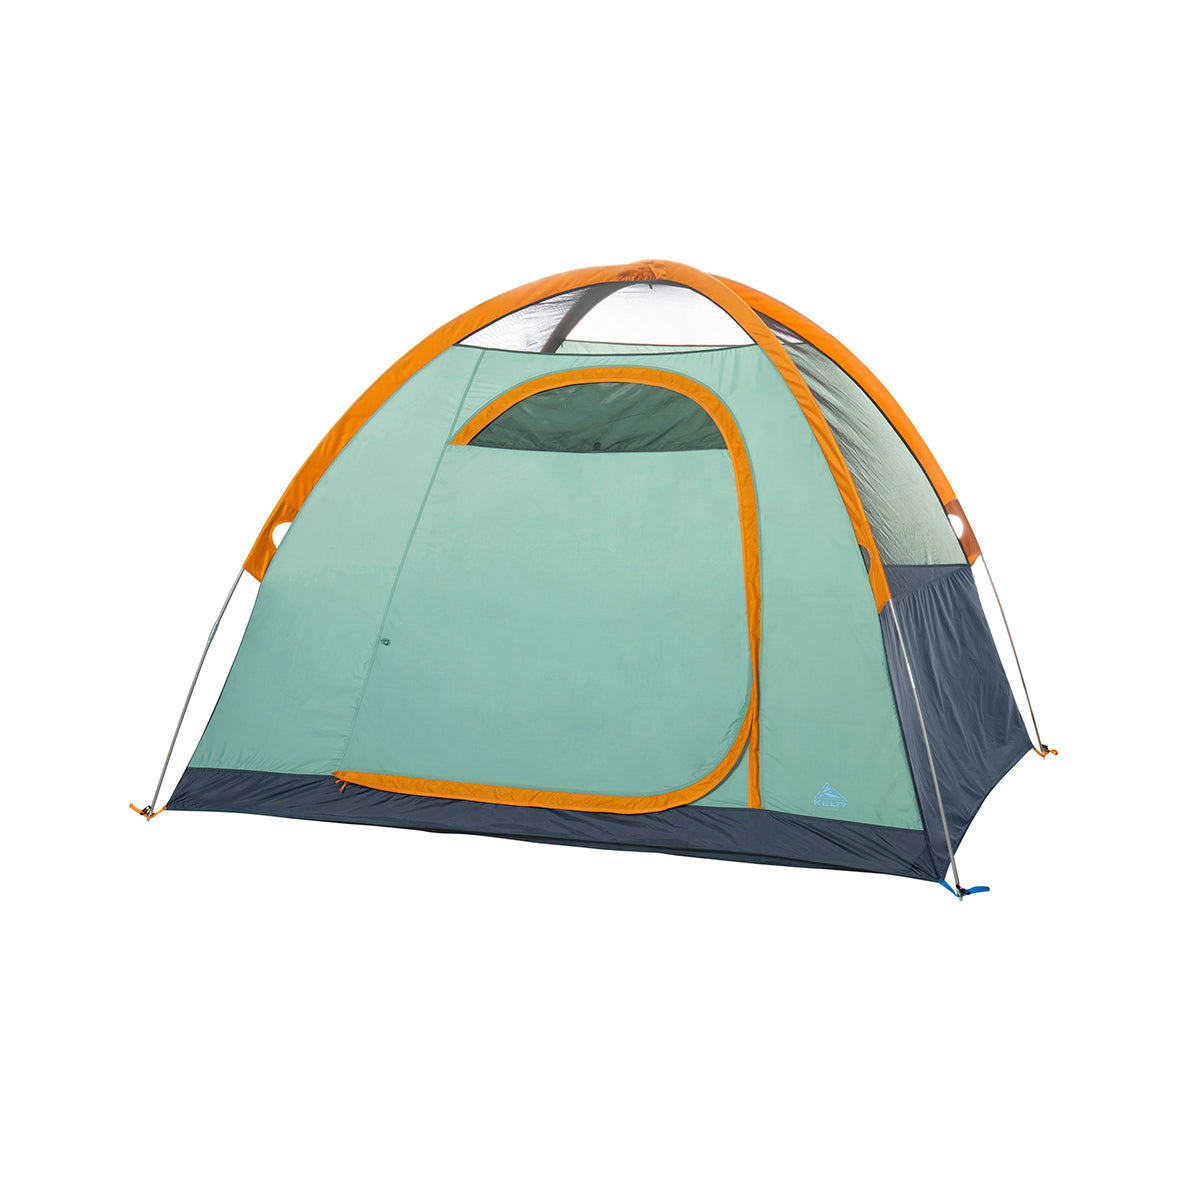 kelty tallboy 4 person tent no fly front view in color light teal with orange accents